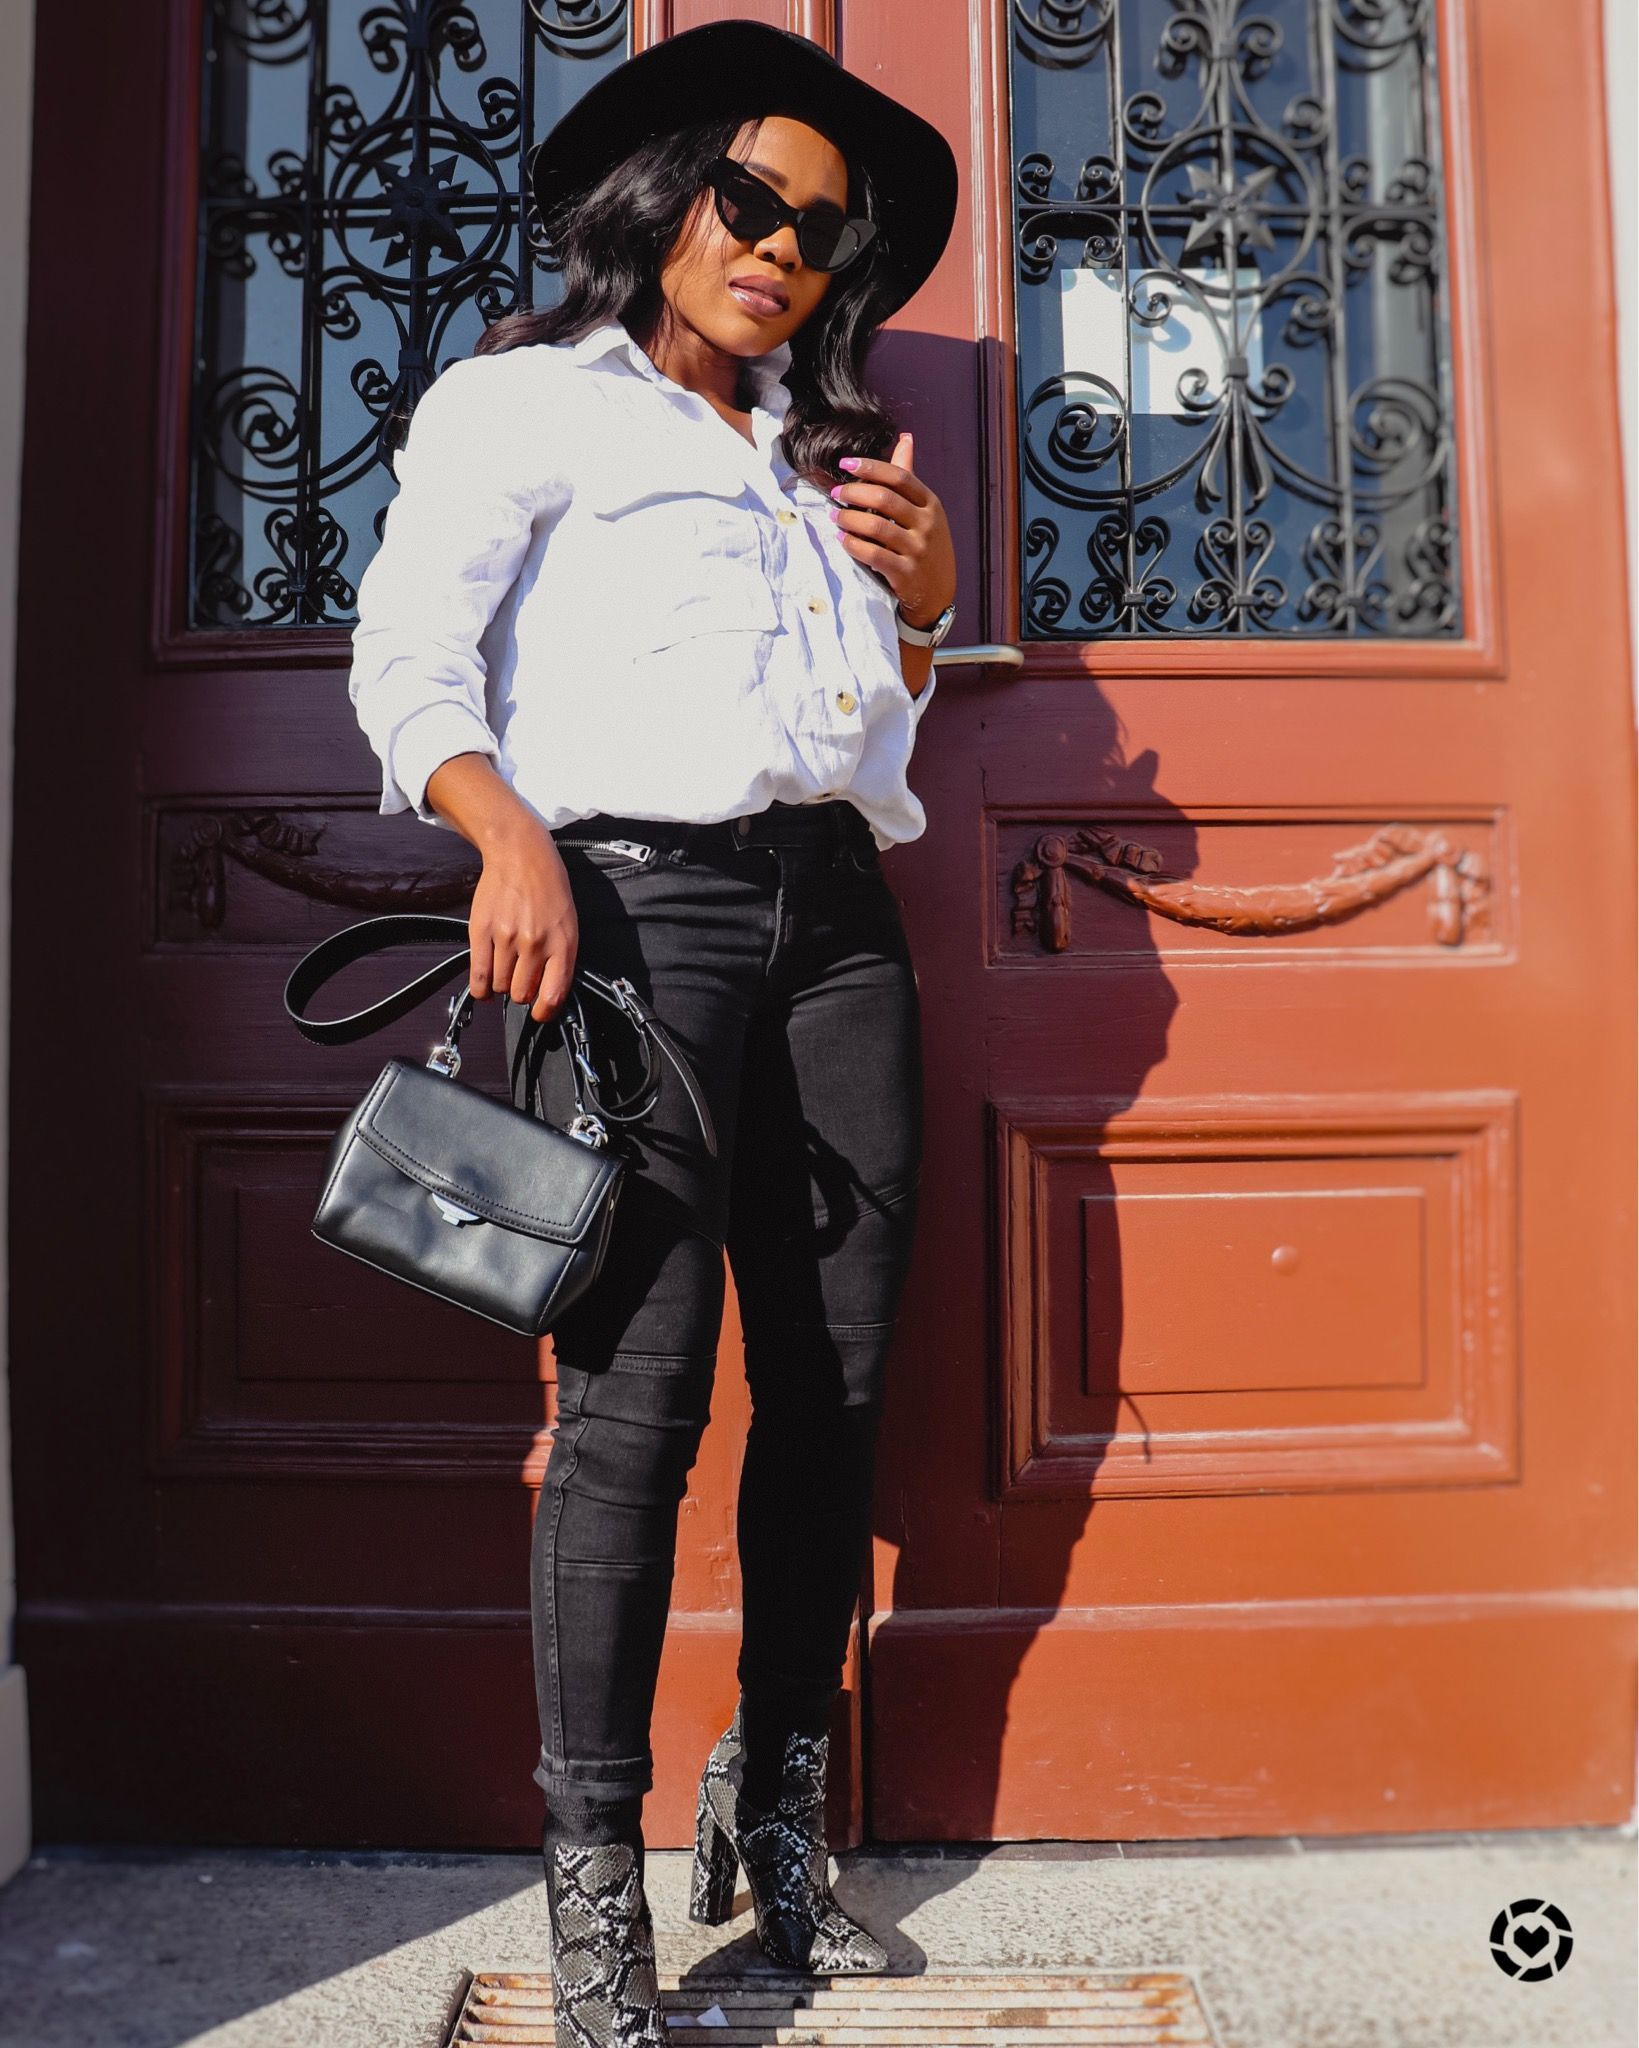 How to wear ankle boots with skinny jeans #skinnyjeansandankleboots #skinnyjeansandankleboots